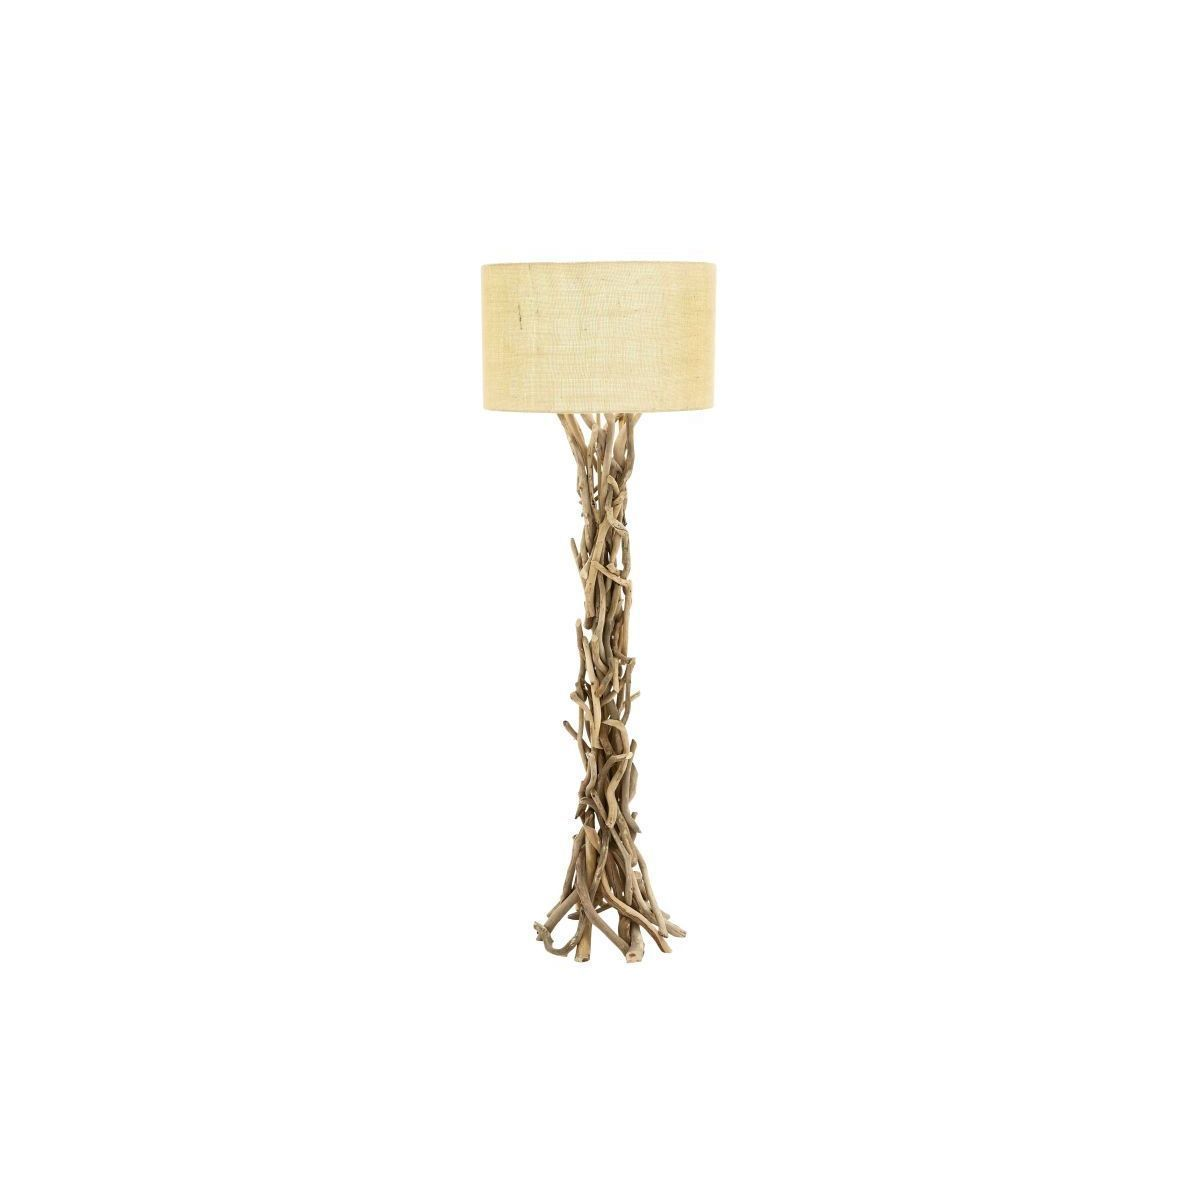 lamp floor branch lamps lights id driftwood